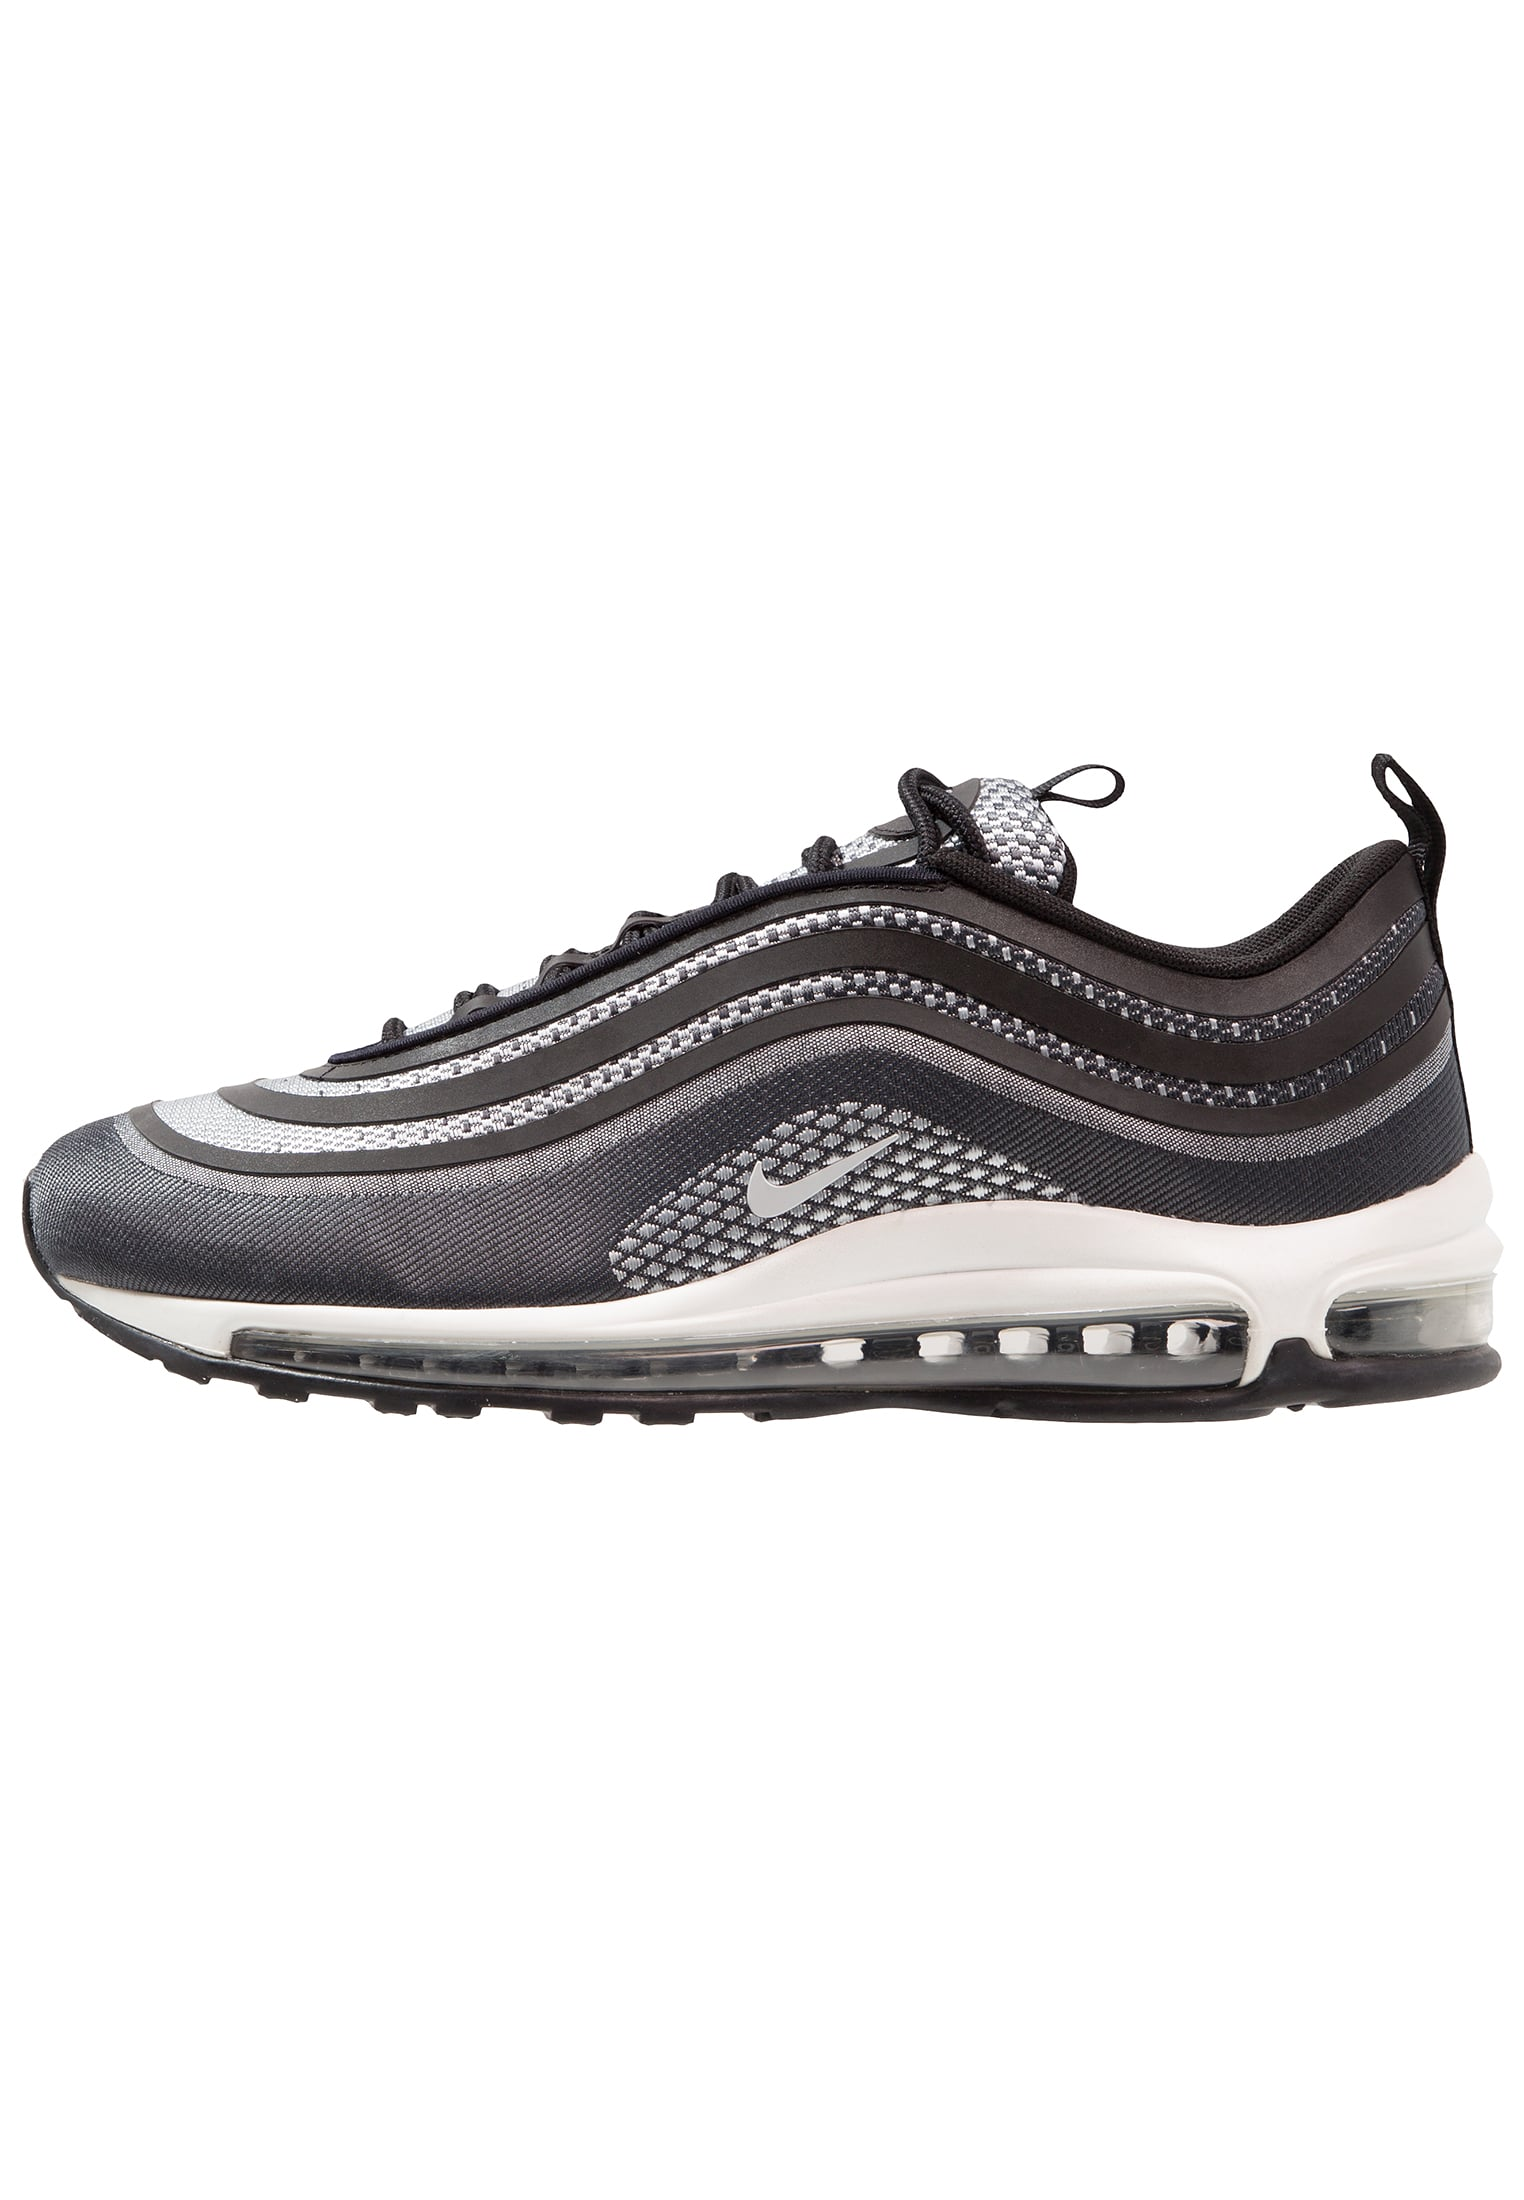 f6662a391c0b Nike Air Max 97 | La sélection de Zalando